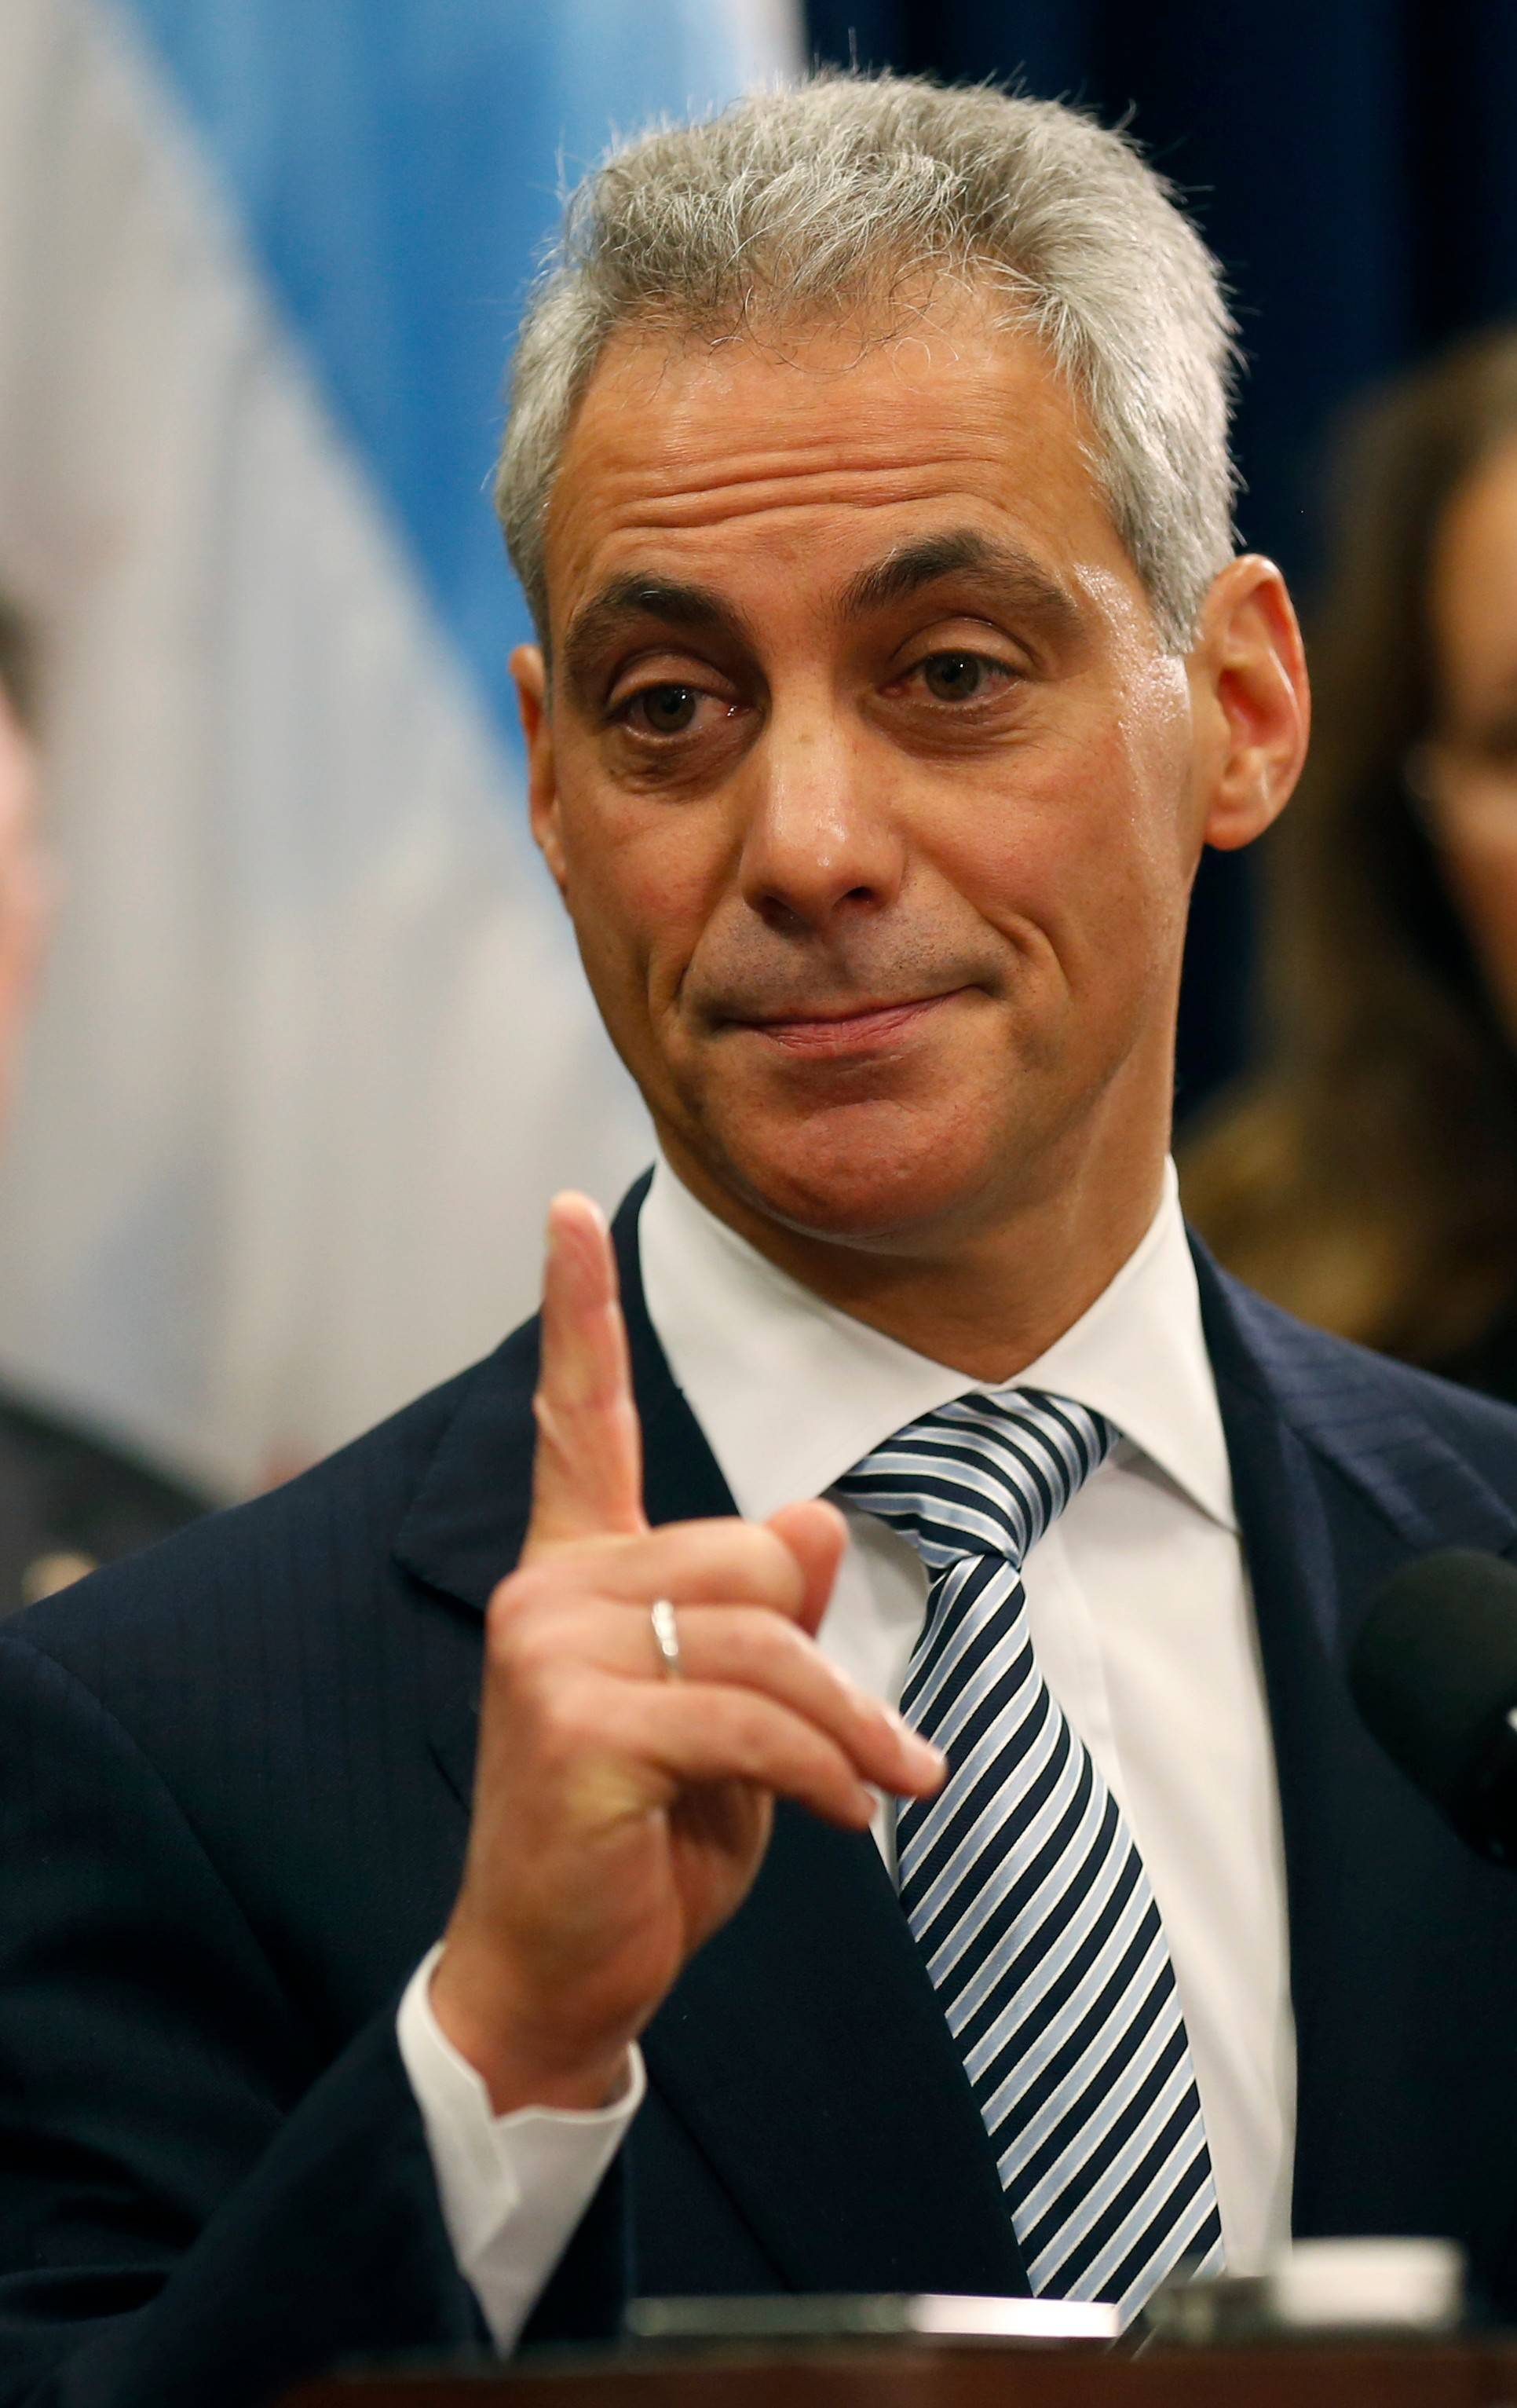 If the Blackhawks lose their series with the Minnesota Wild, Chicago Mayor Rahm Emanuel will be sending St. Paul Mayor Chris Coleman a six-pack of Half Acre Daisy Cutter beer, a barrel of Garrett's Popcorn, and some Chicago-style hot Giardiniera.